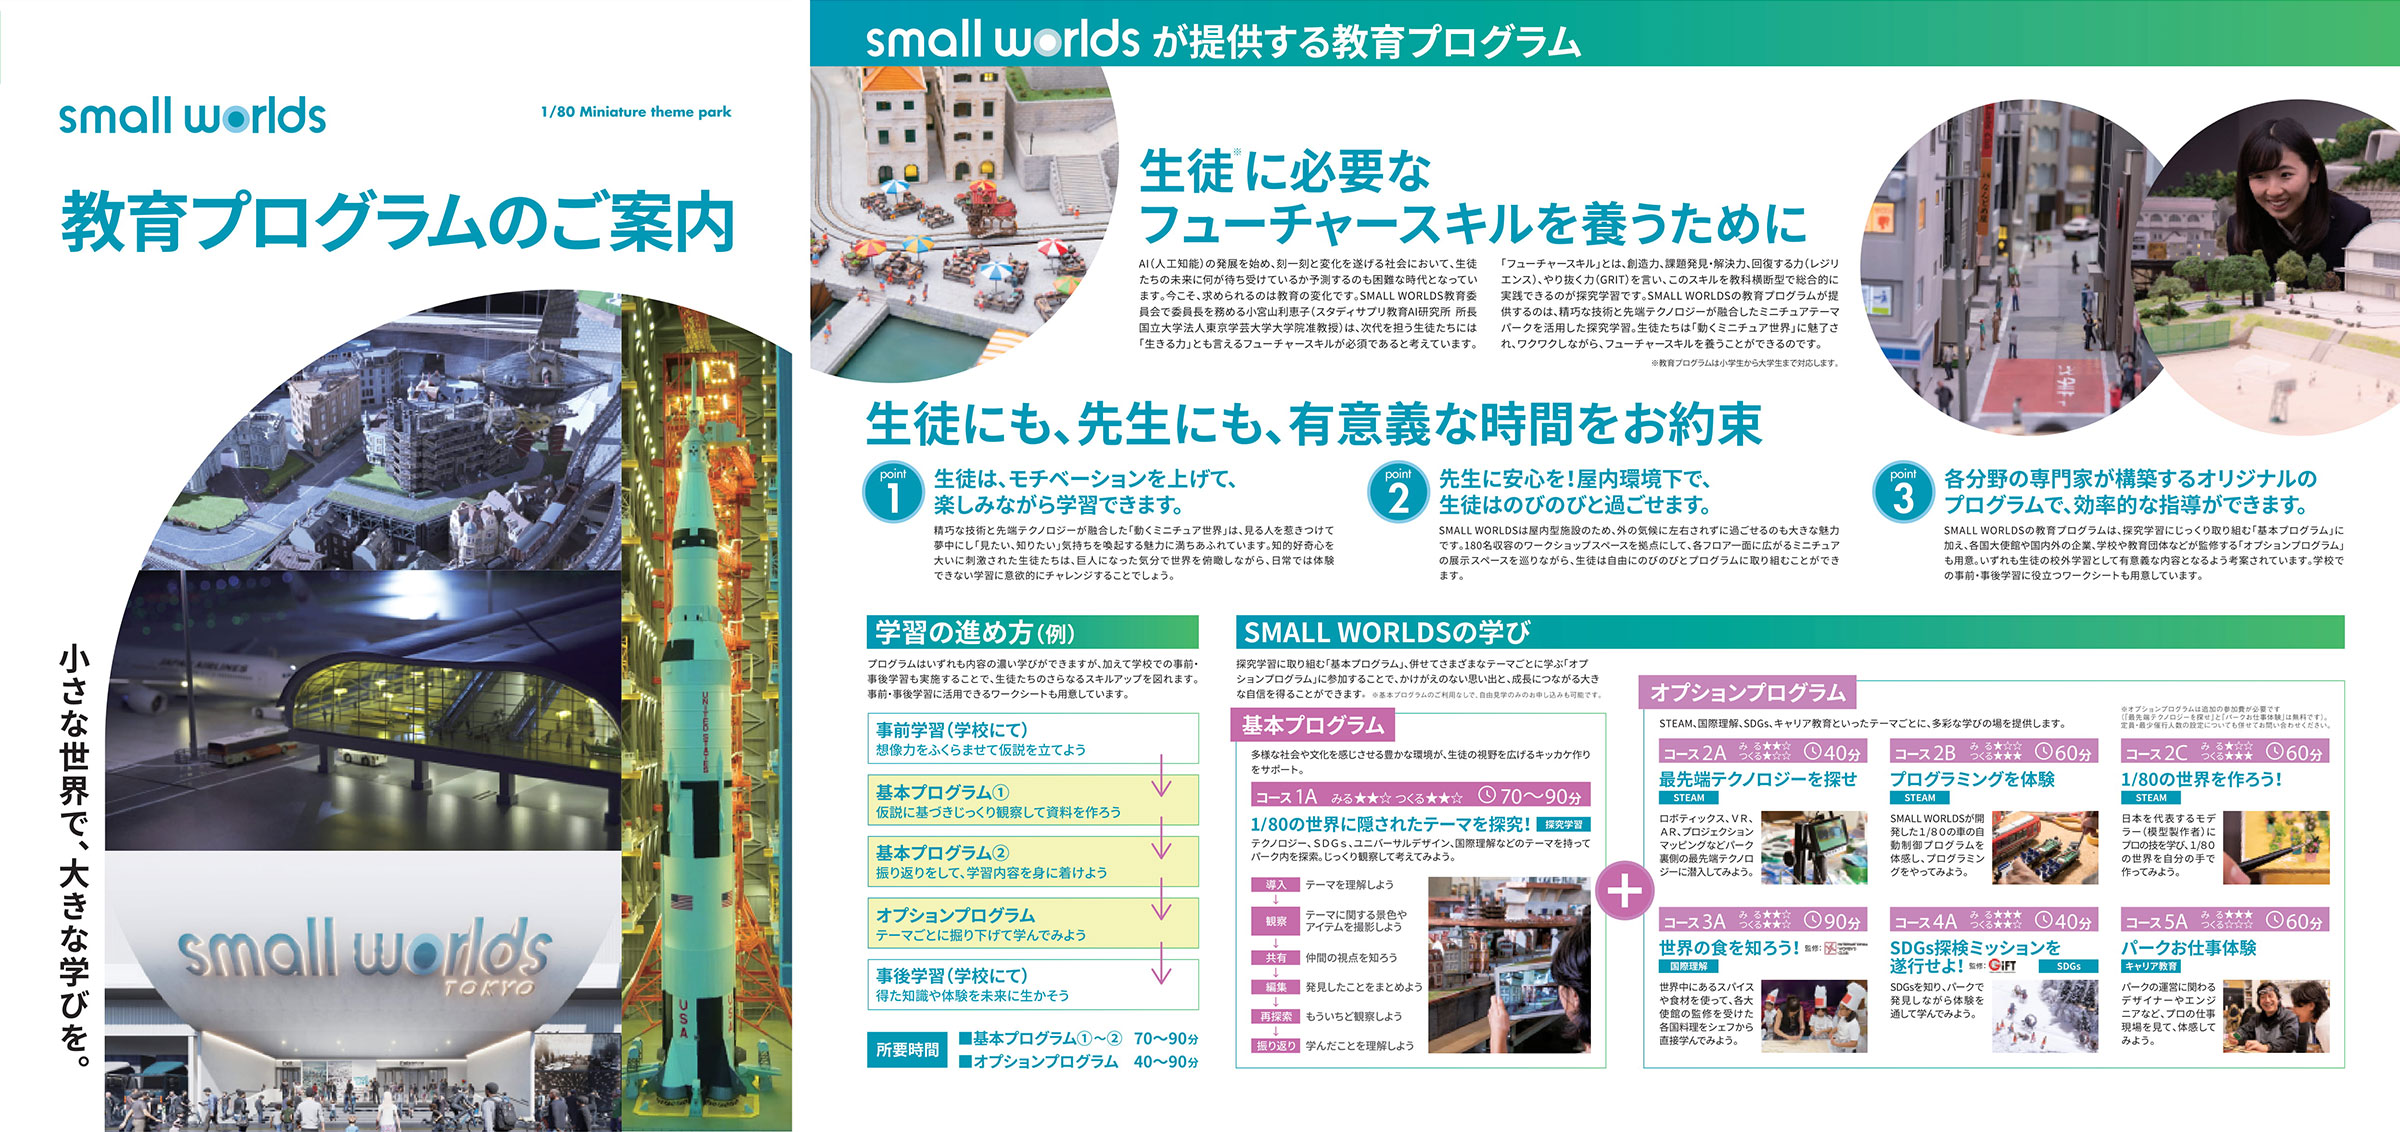 SMALL WORLDS TOKYO 教育プログラムのご案内